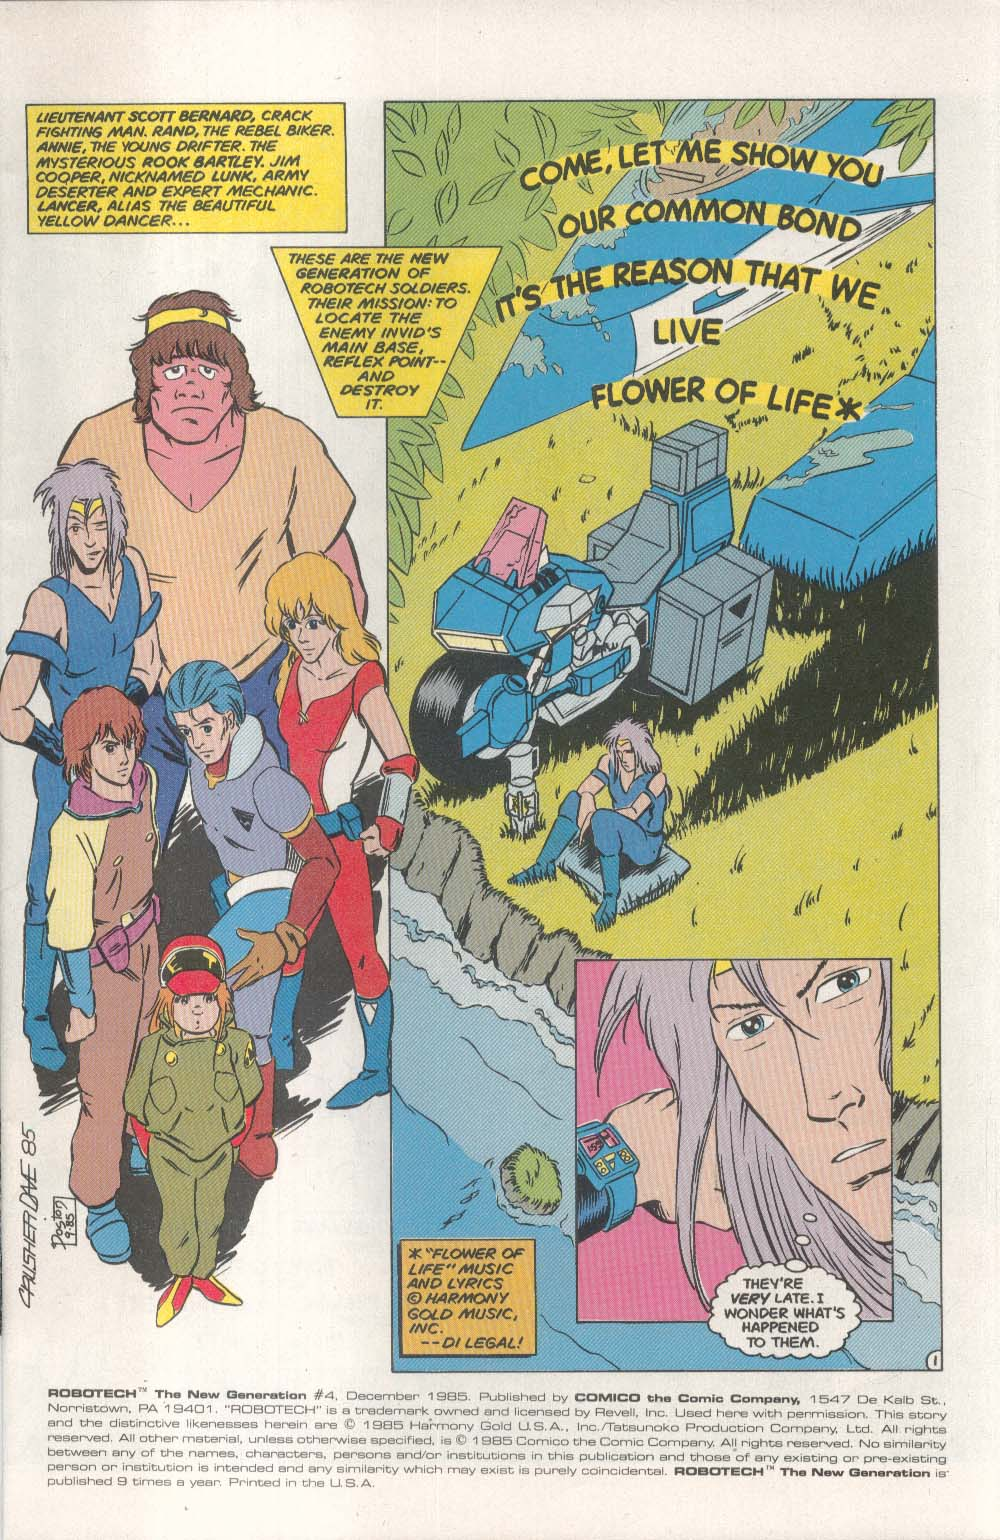 ROBOTECH New Generation #4 Comico comic book 12 1985